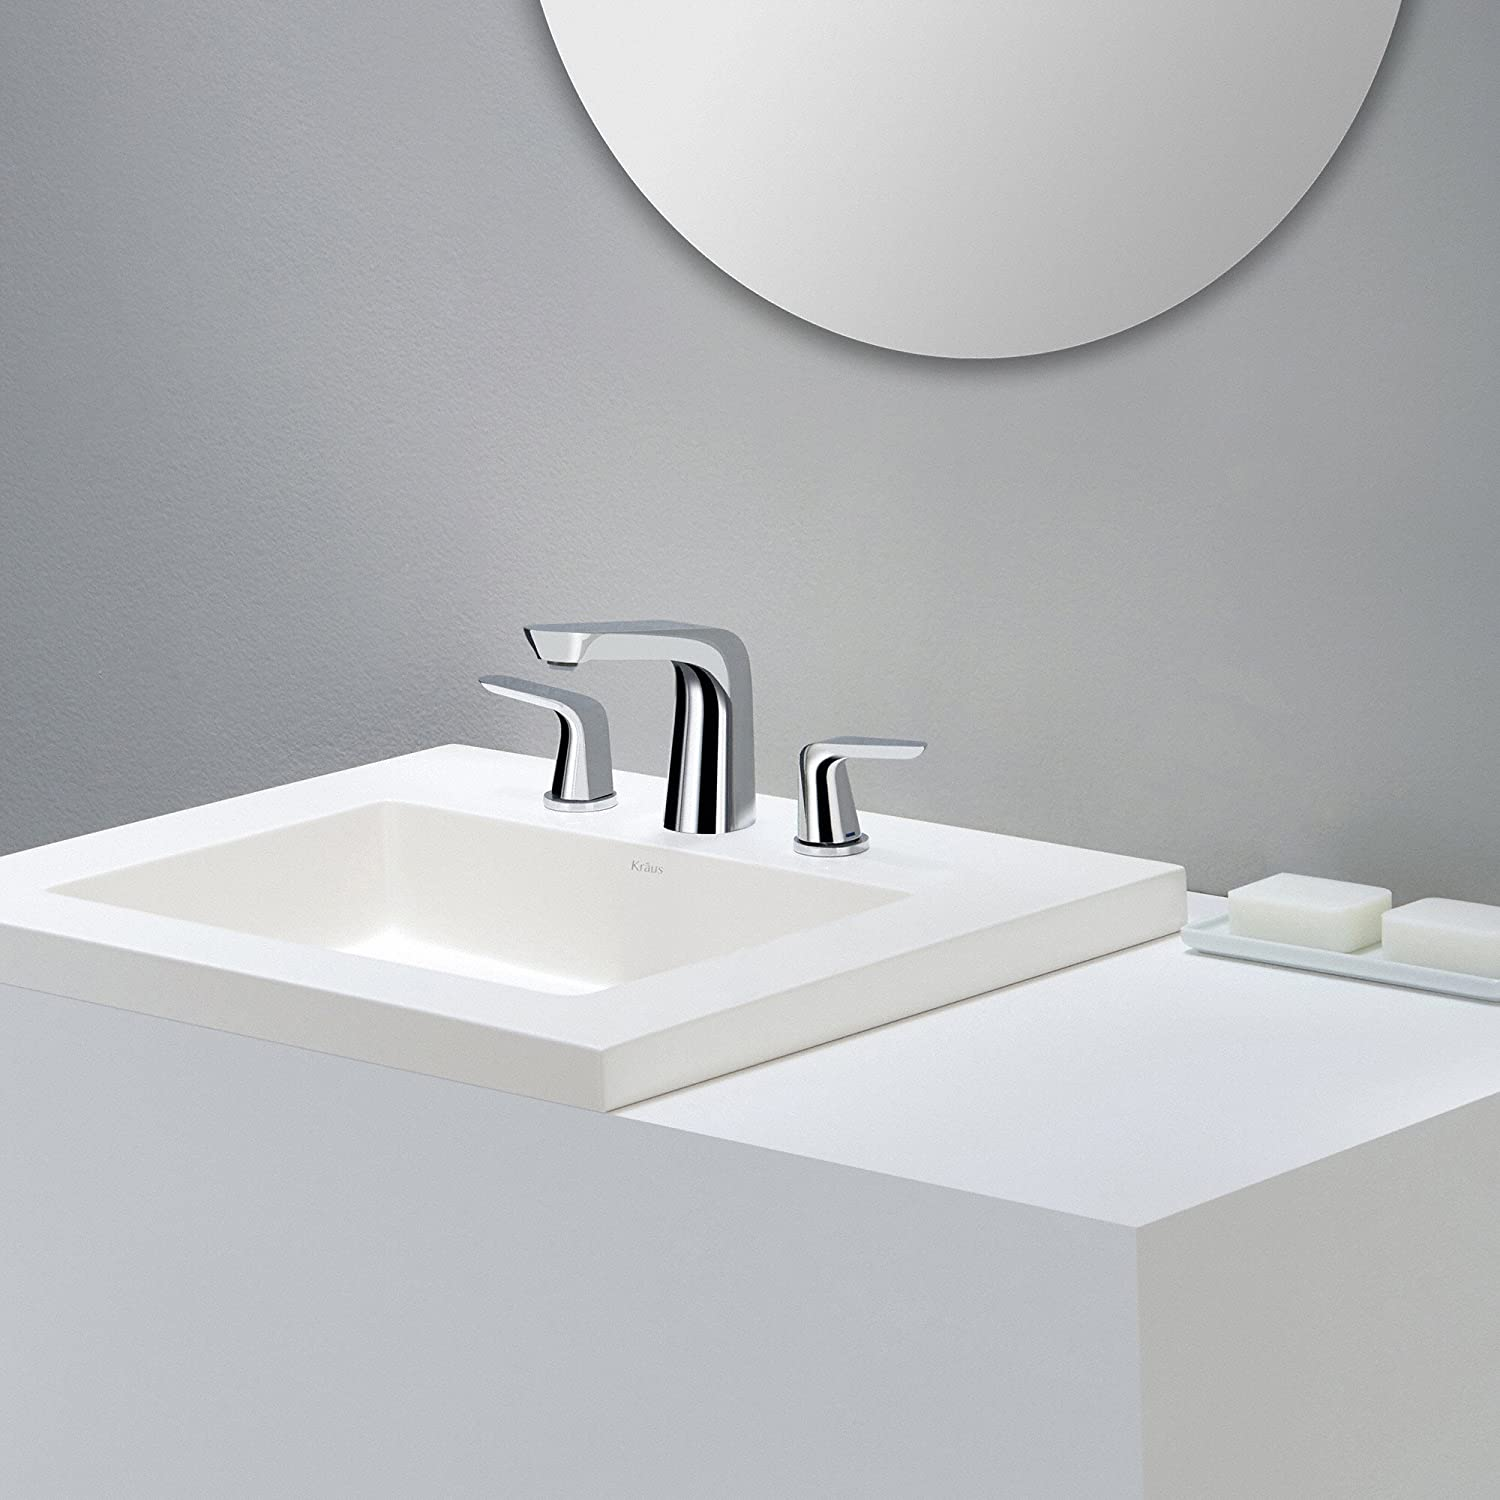 Funky Kraus Bathroom Faucet Pattern - Faucet Products - austinmartin.us